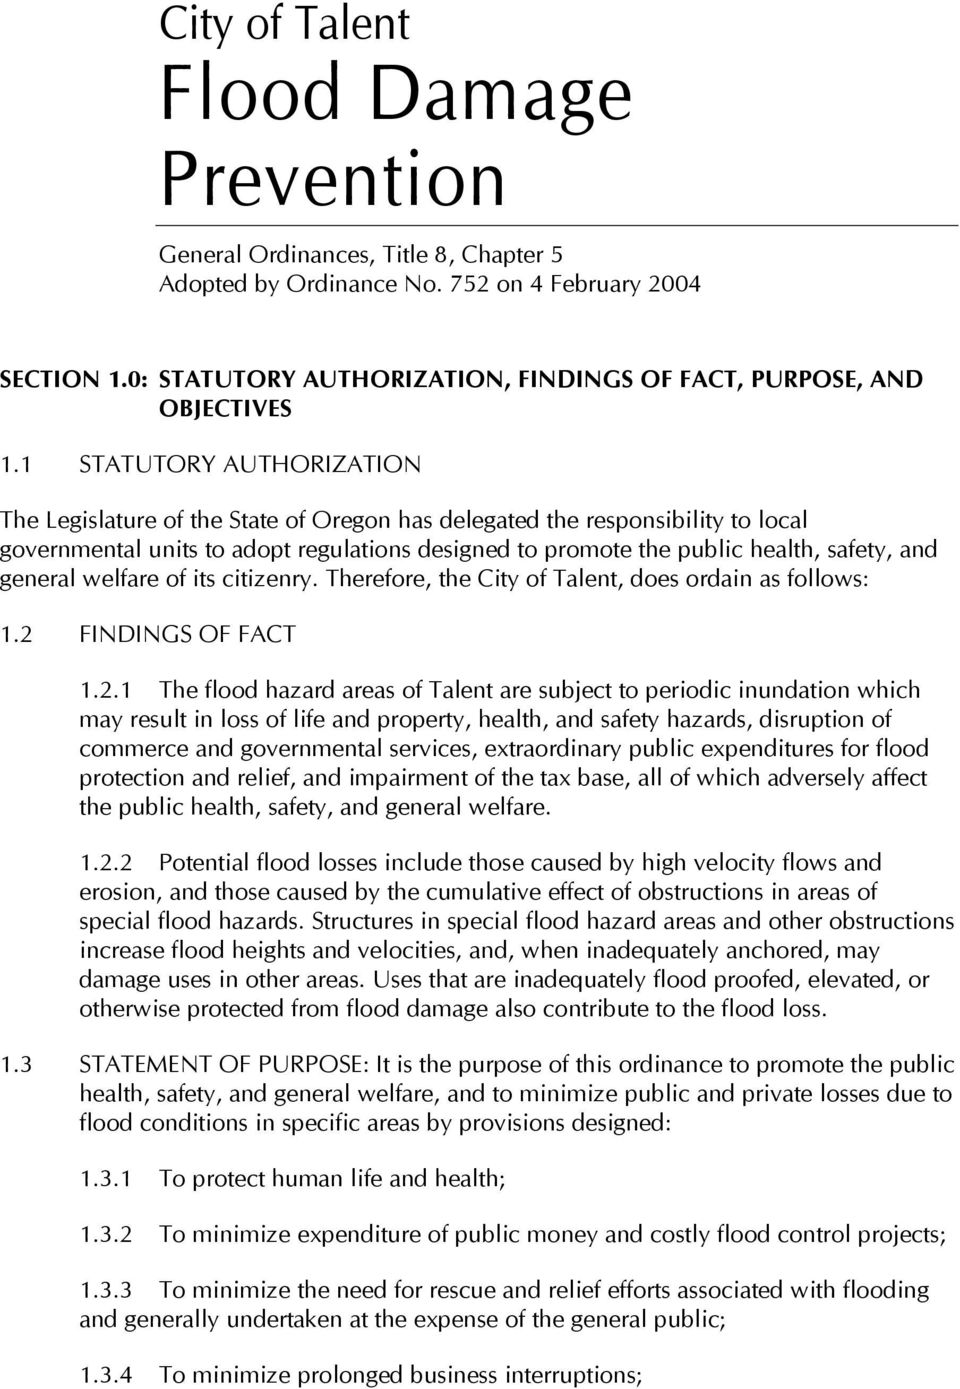 1 STATUTORY AUTHORIZATION The Legislature of the State of Oregon has delegated the responsibility to local governmental units to adopt regulations designed to promote the public health, safety, and